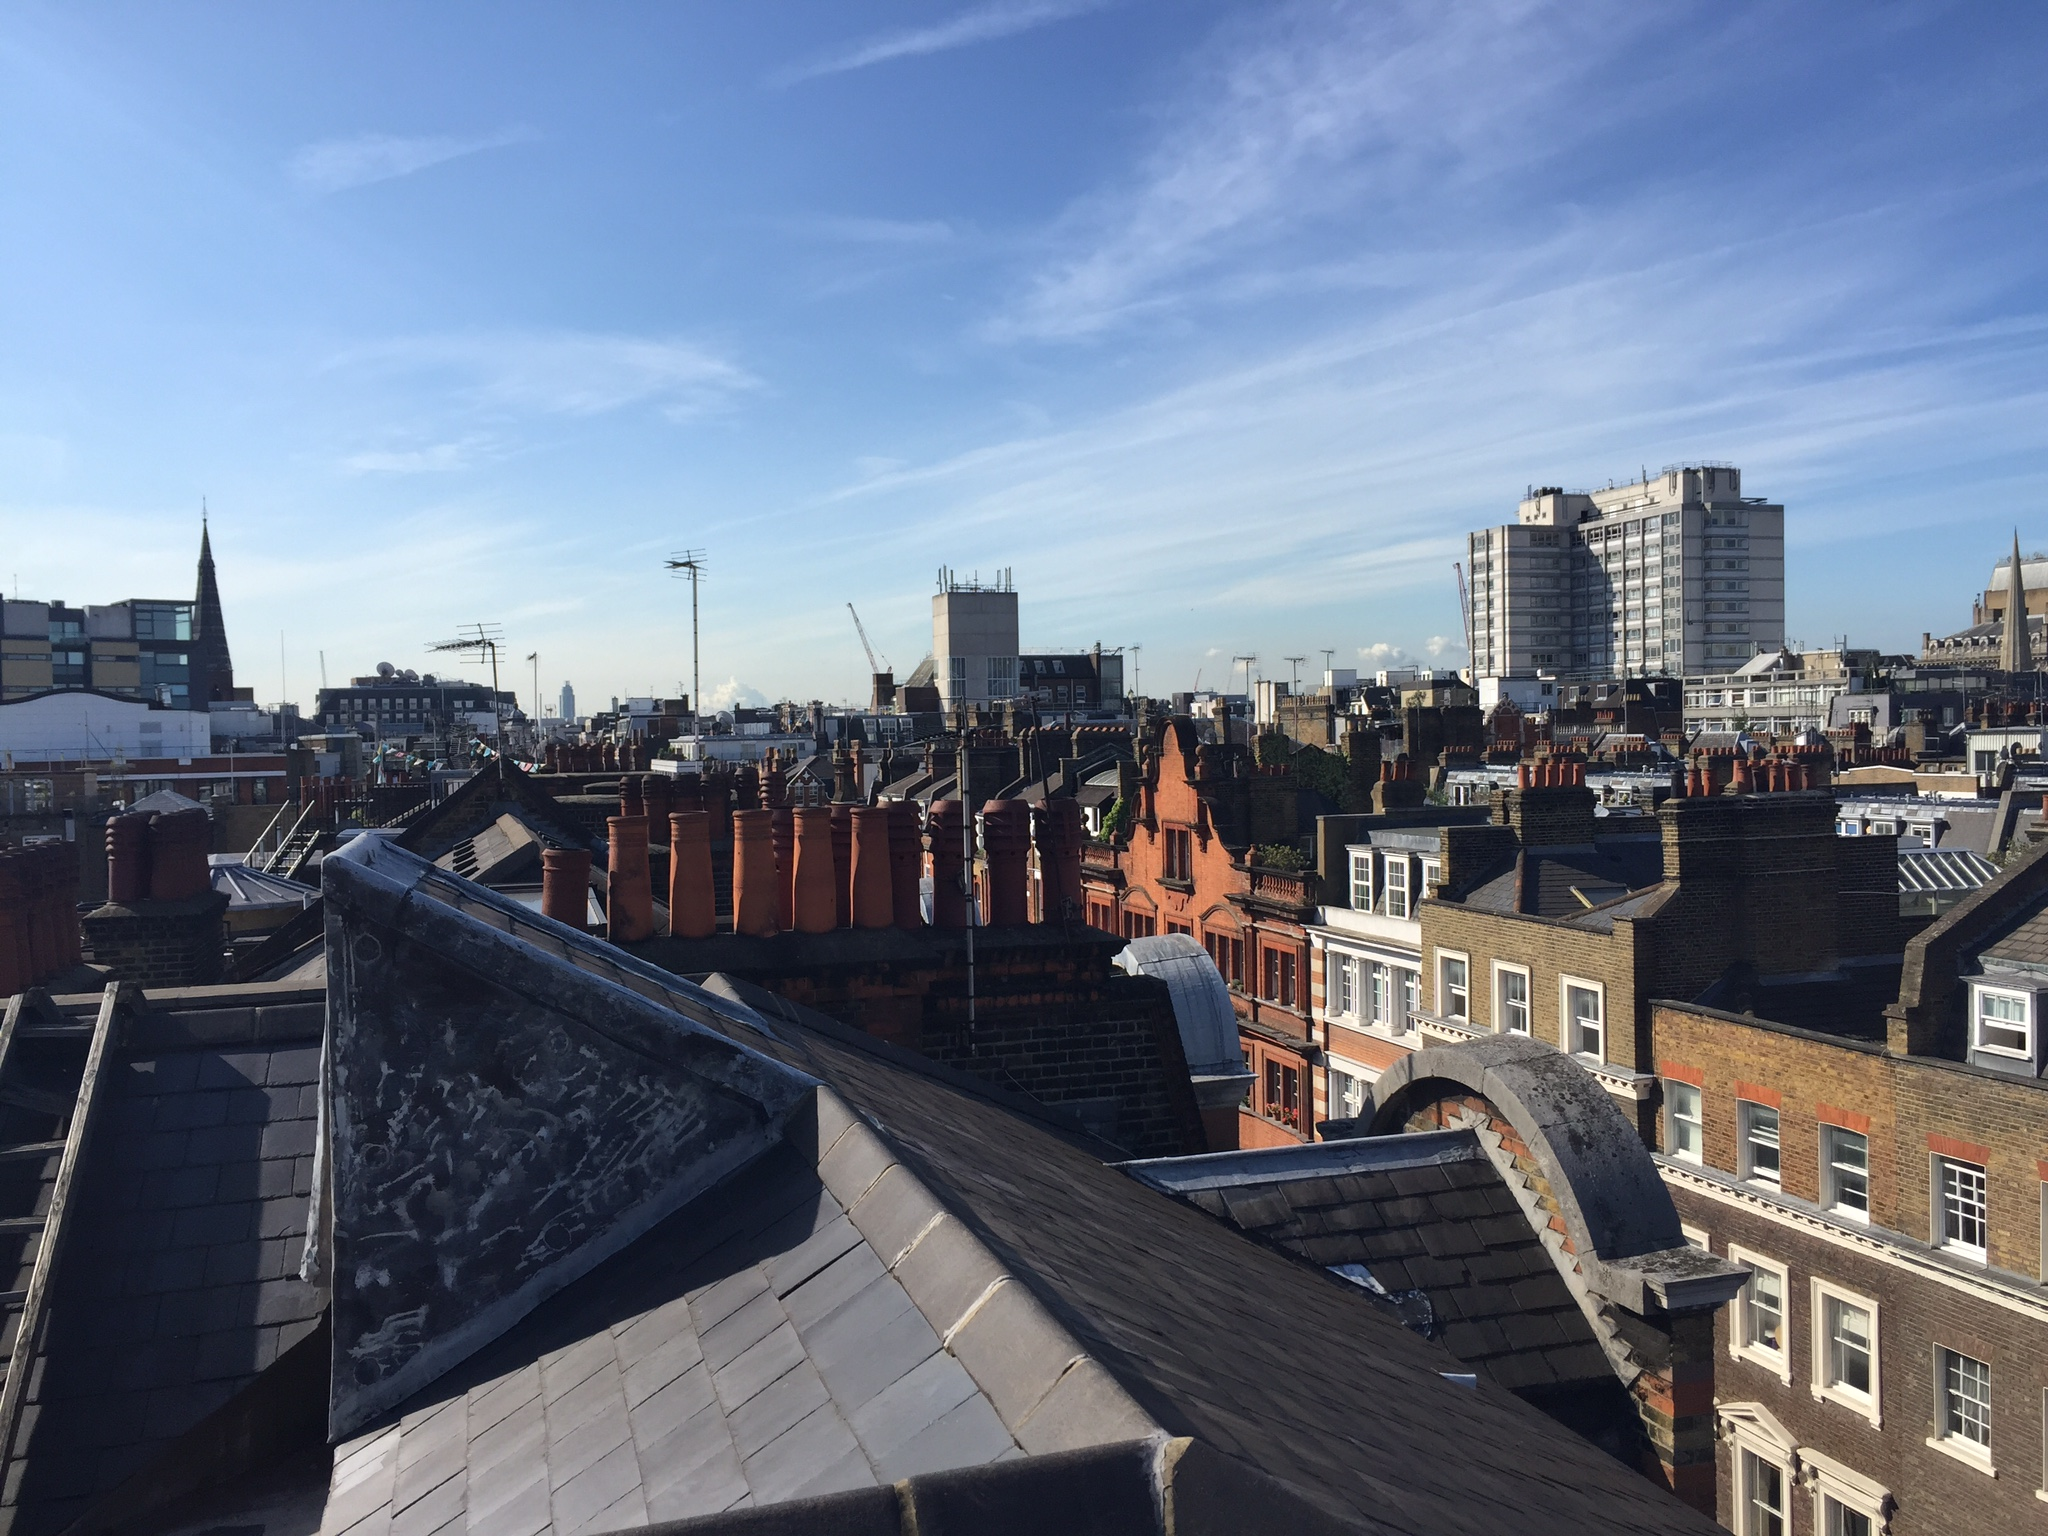 View over the rootops looking south along Great Titchfield Street. The spires of All Saints and All Soul's are both visible.